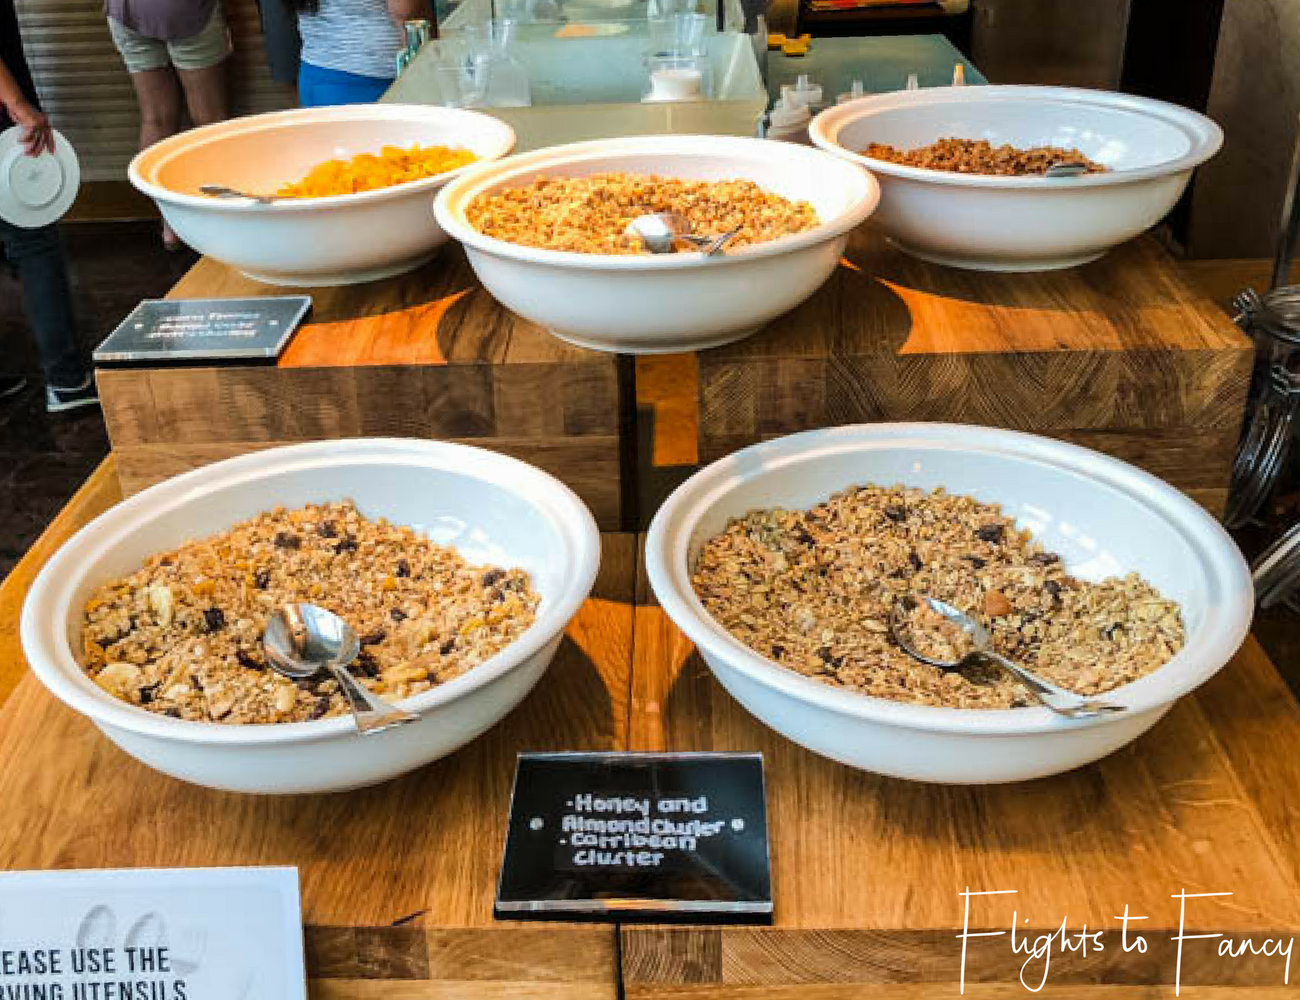 Flights To Fancy @ Raffles Makati Manila - Cereal Breakfast Buffet